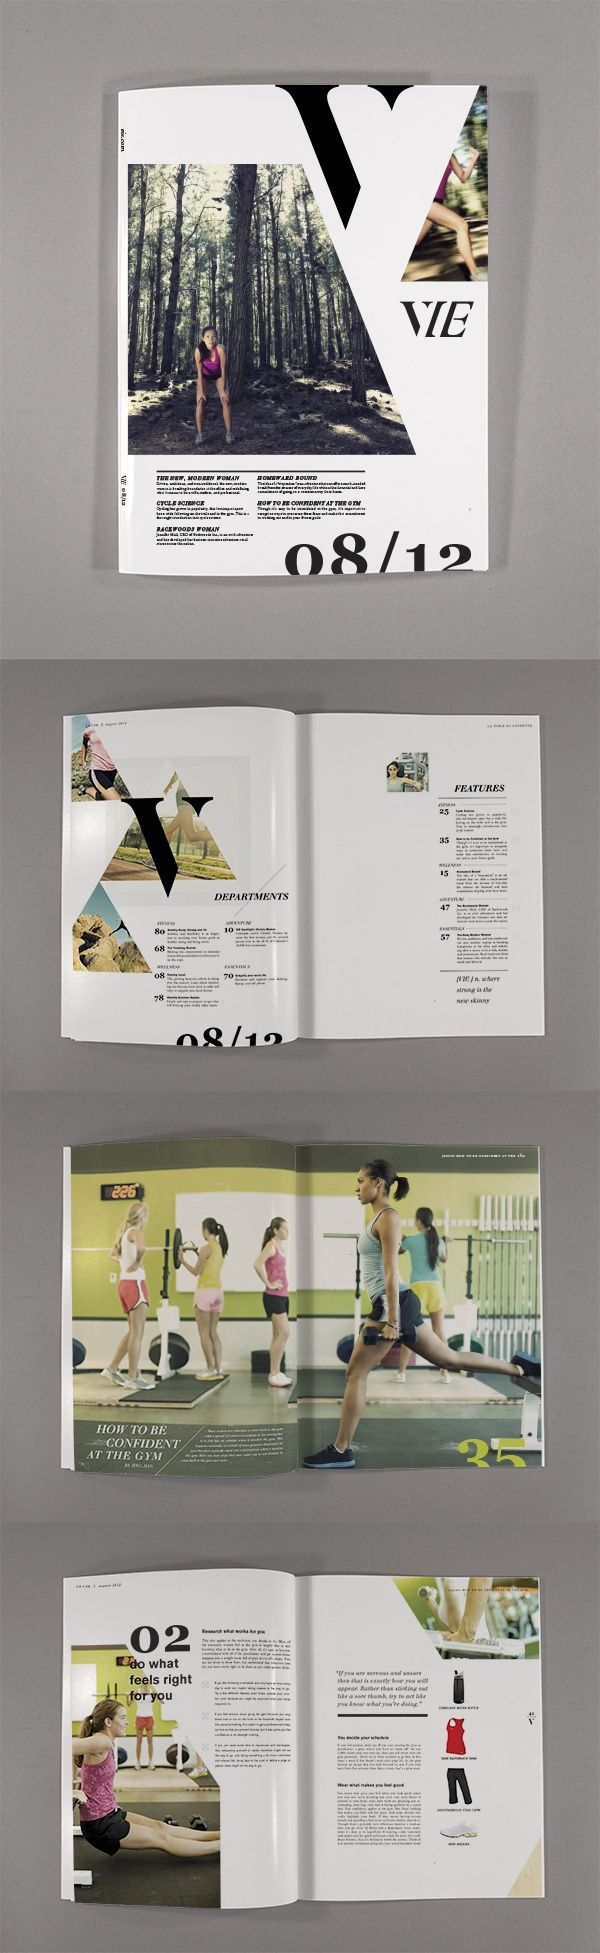 34 besten magcover bilder auf pinterest editorial design for Grafikdesign schule